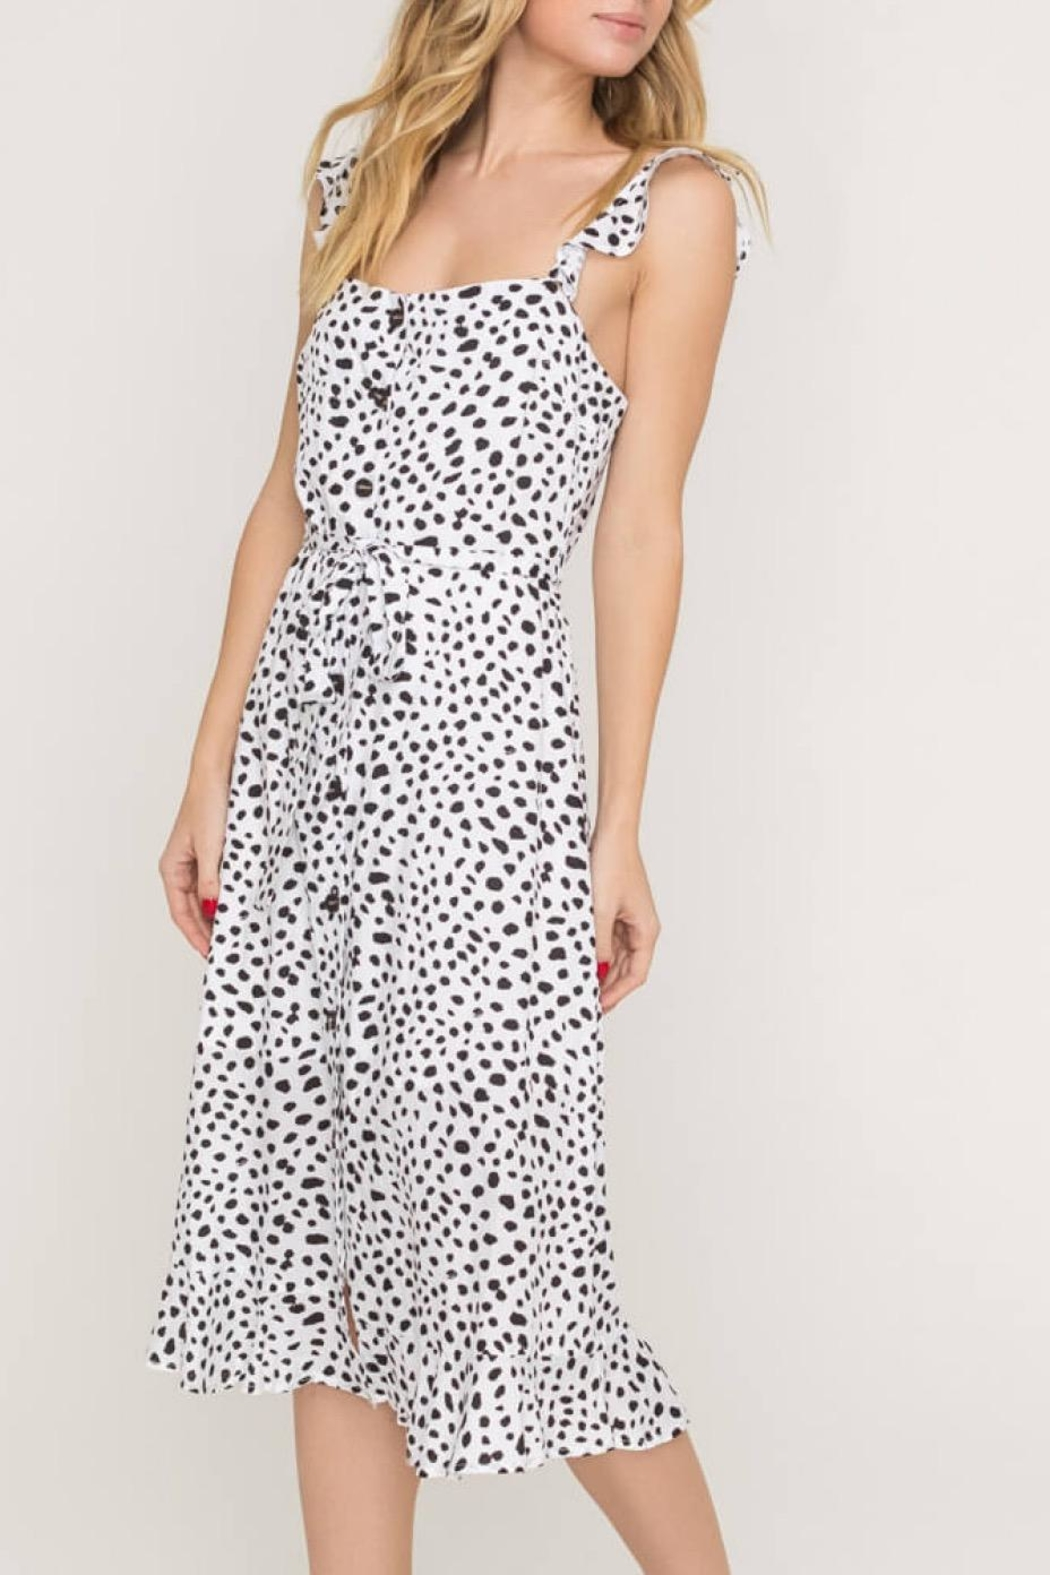 Lush Clothing  Speckled Midi Dress - Front Full Image